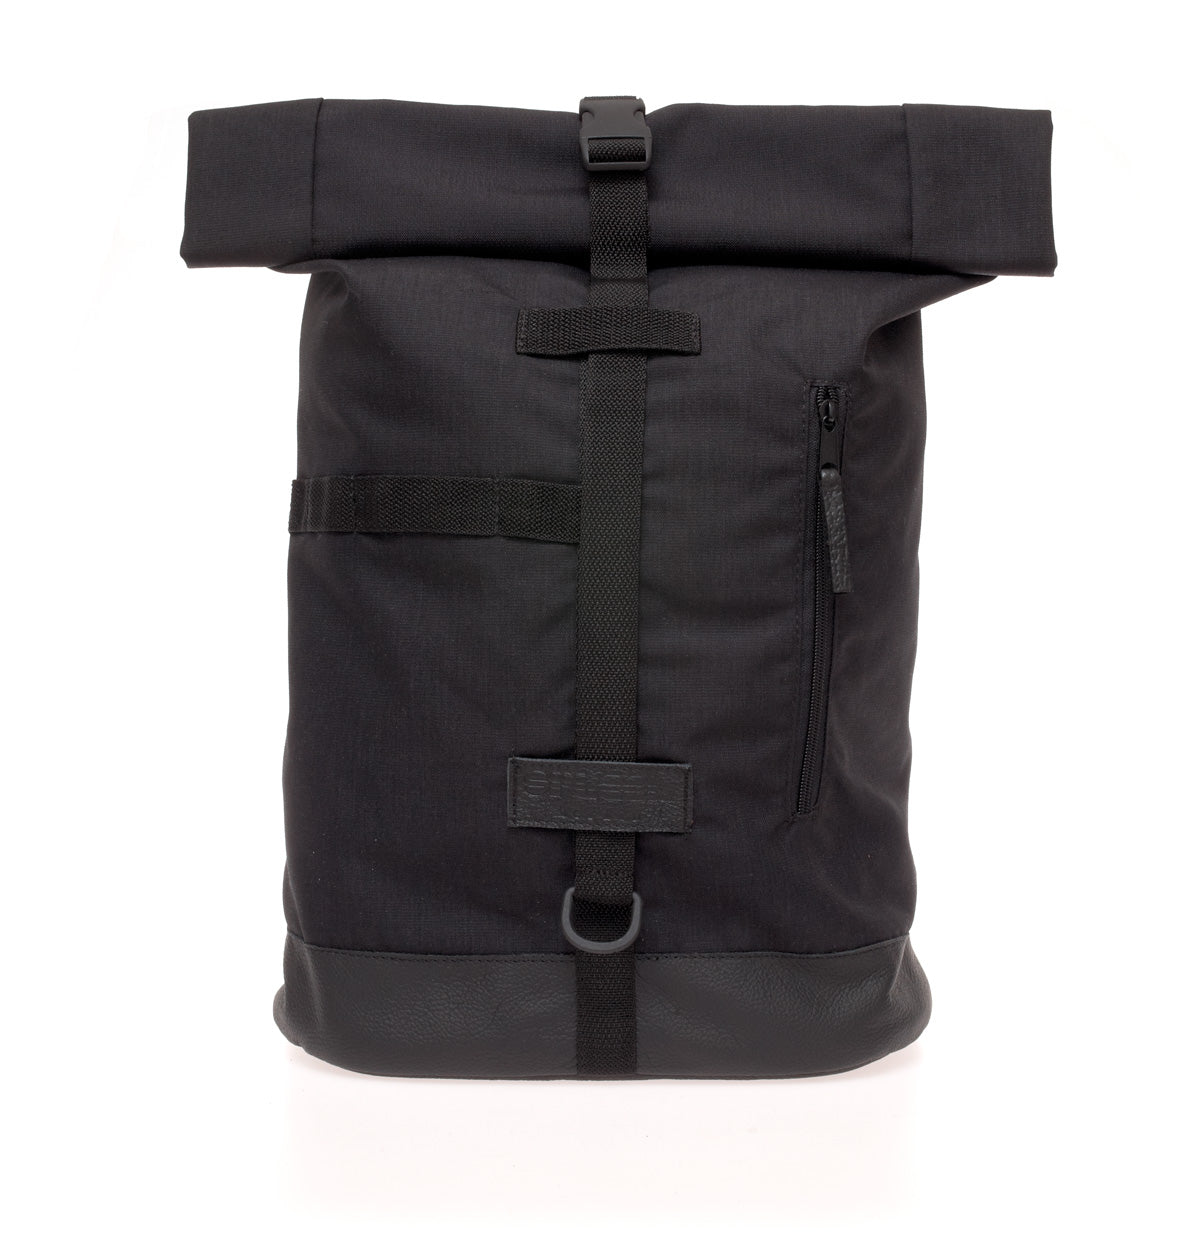 Spleen Berlin - The light weight Bikebag/Backpack